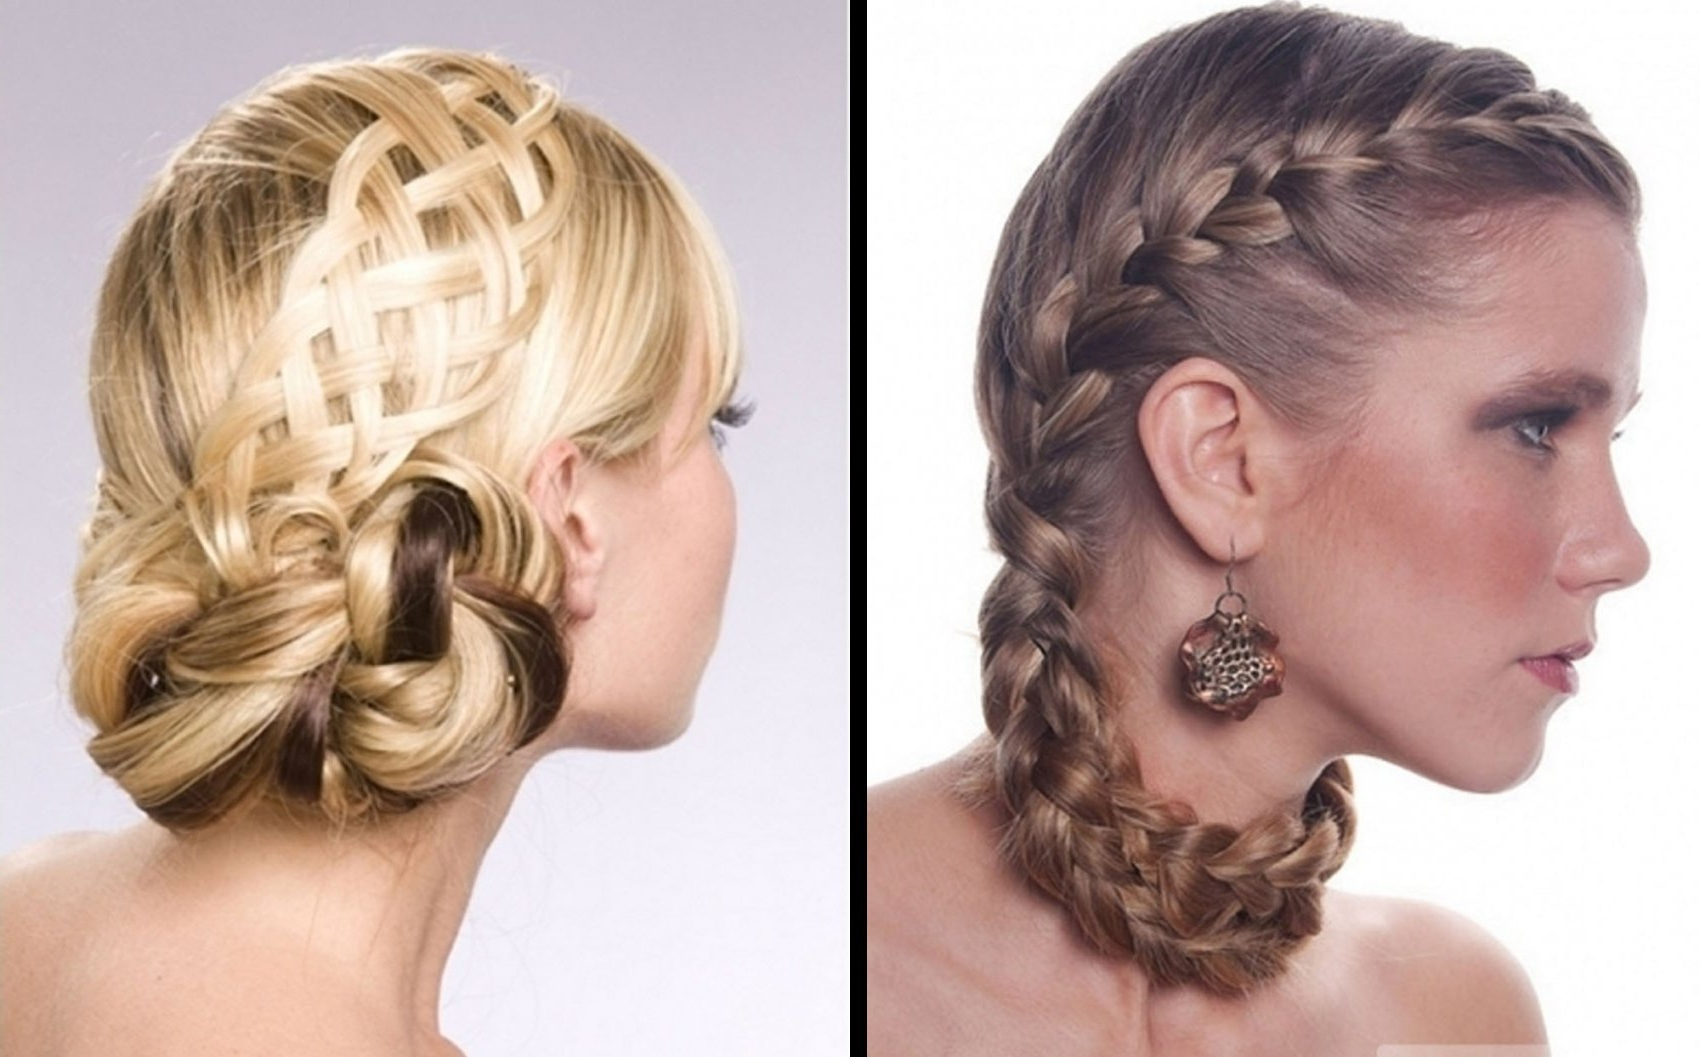 Hairstyles Prom For Short Hair Easy (View 1 of 20)